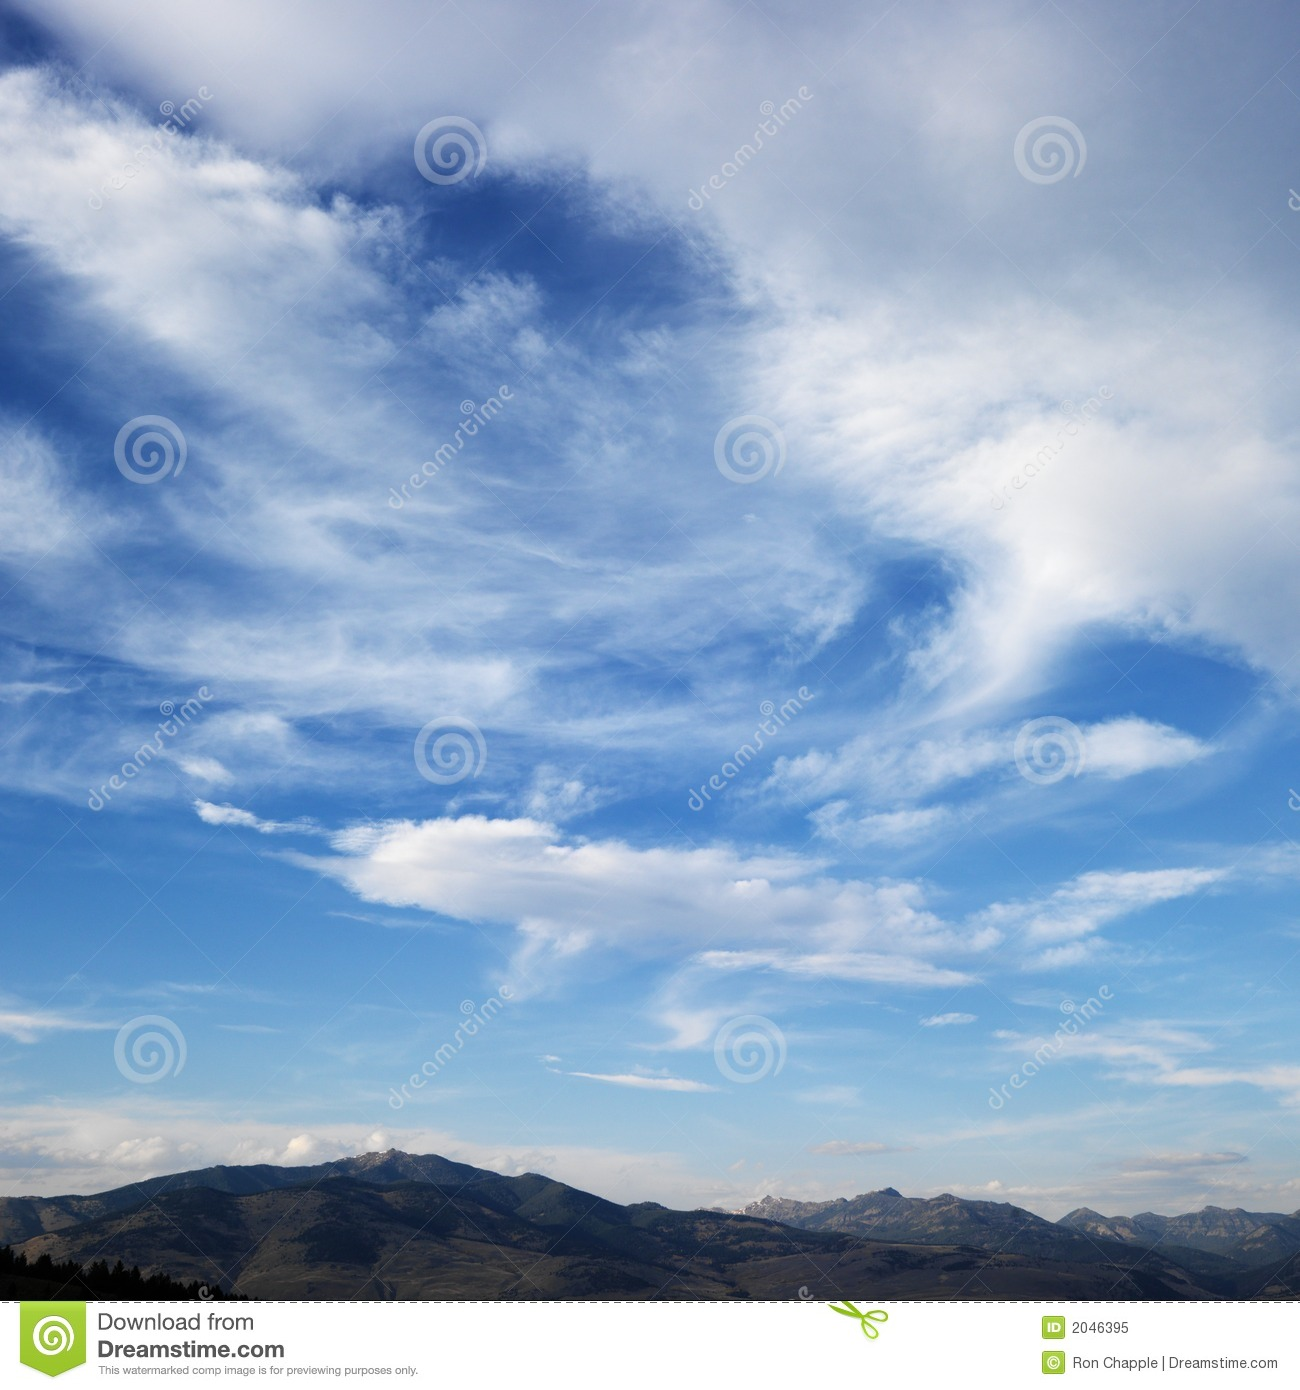 Blue Sky with Clouds Mountains